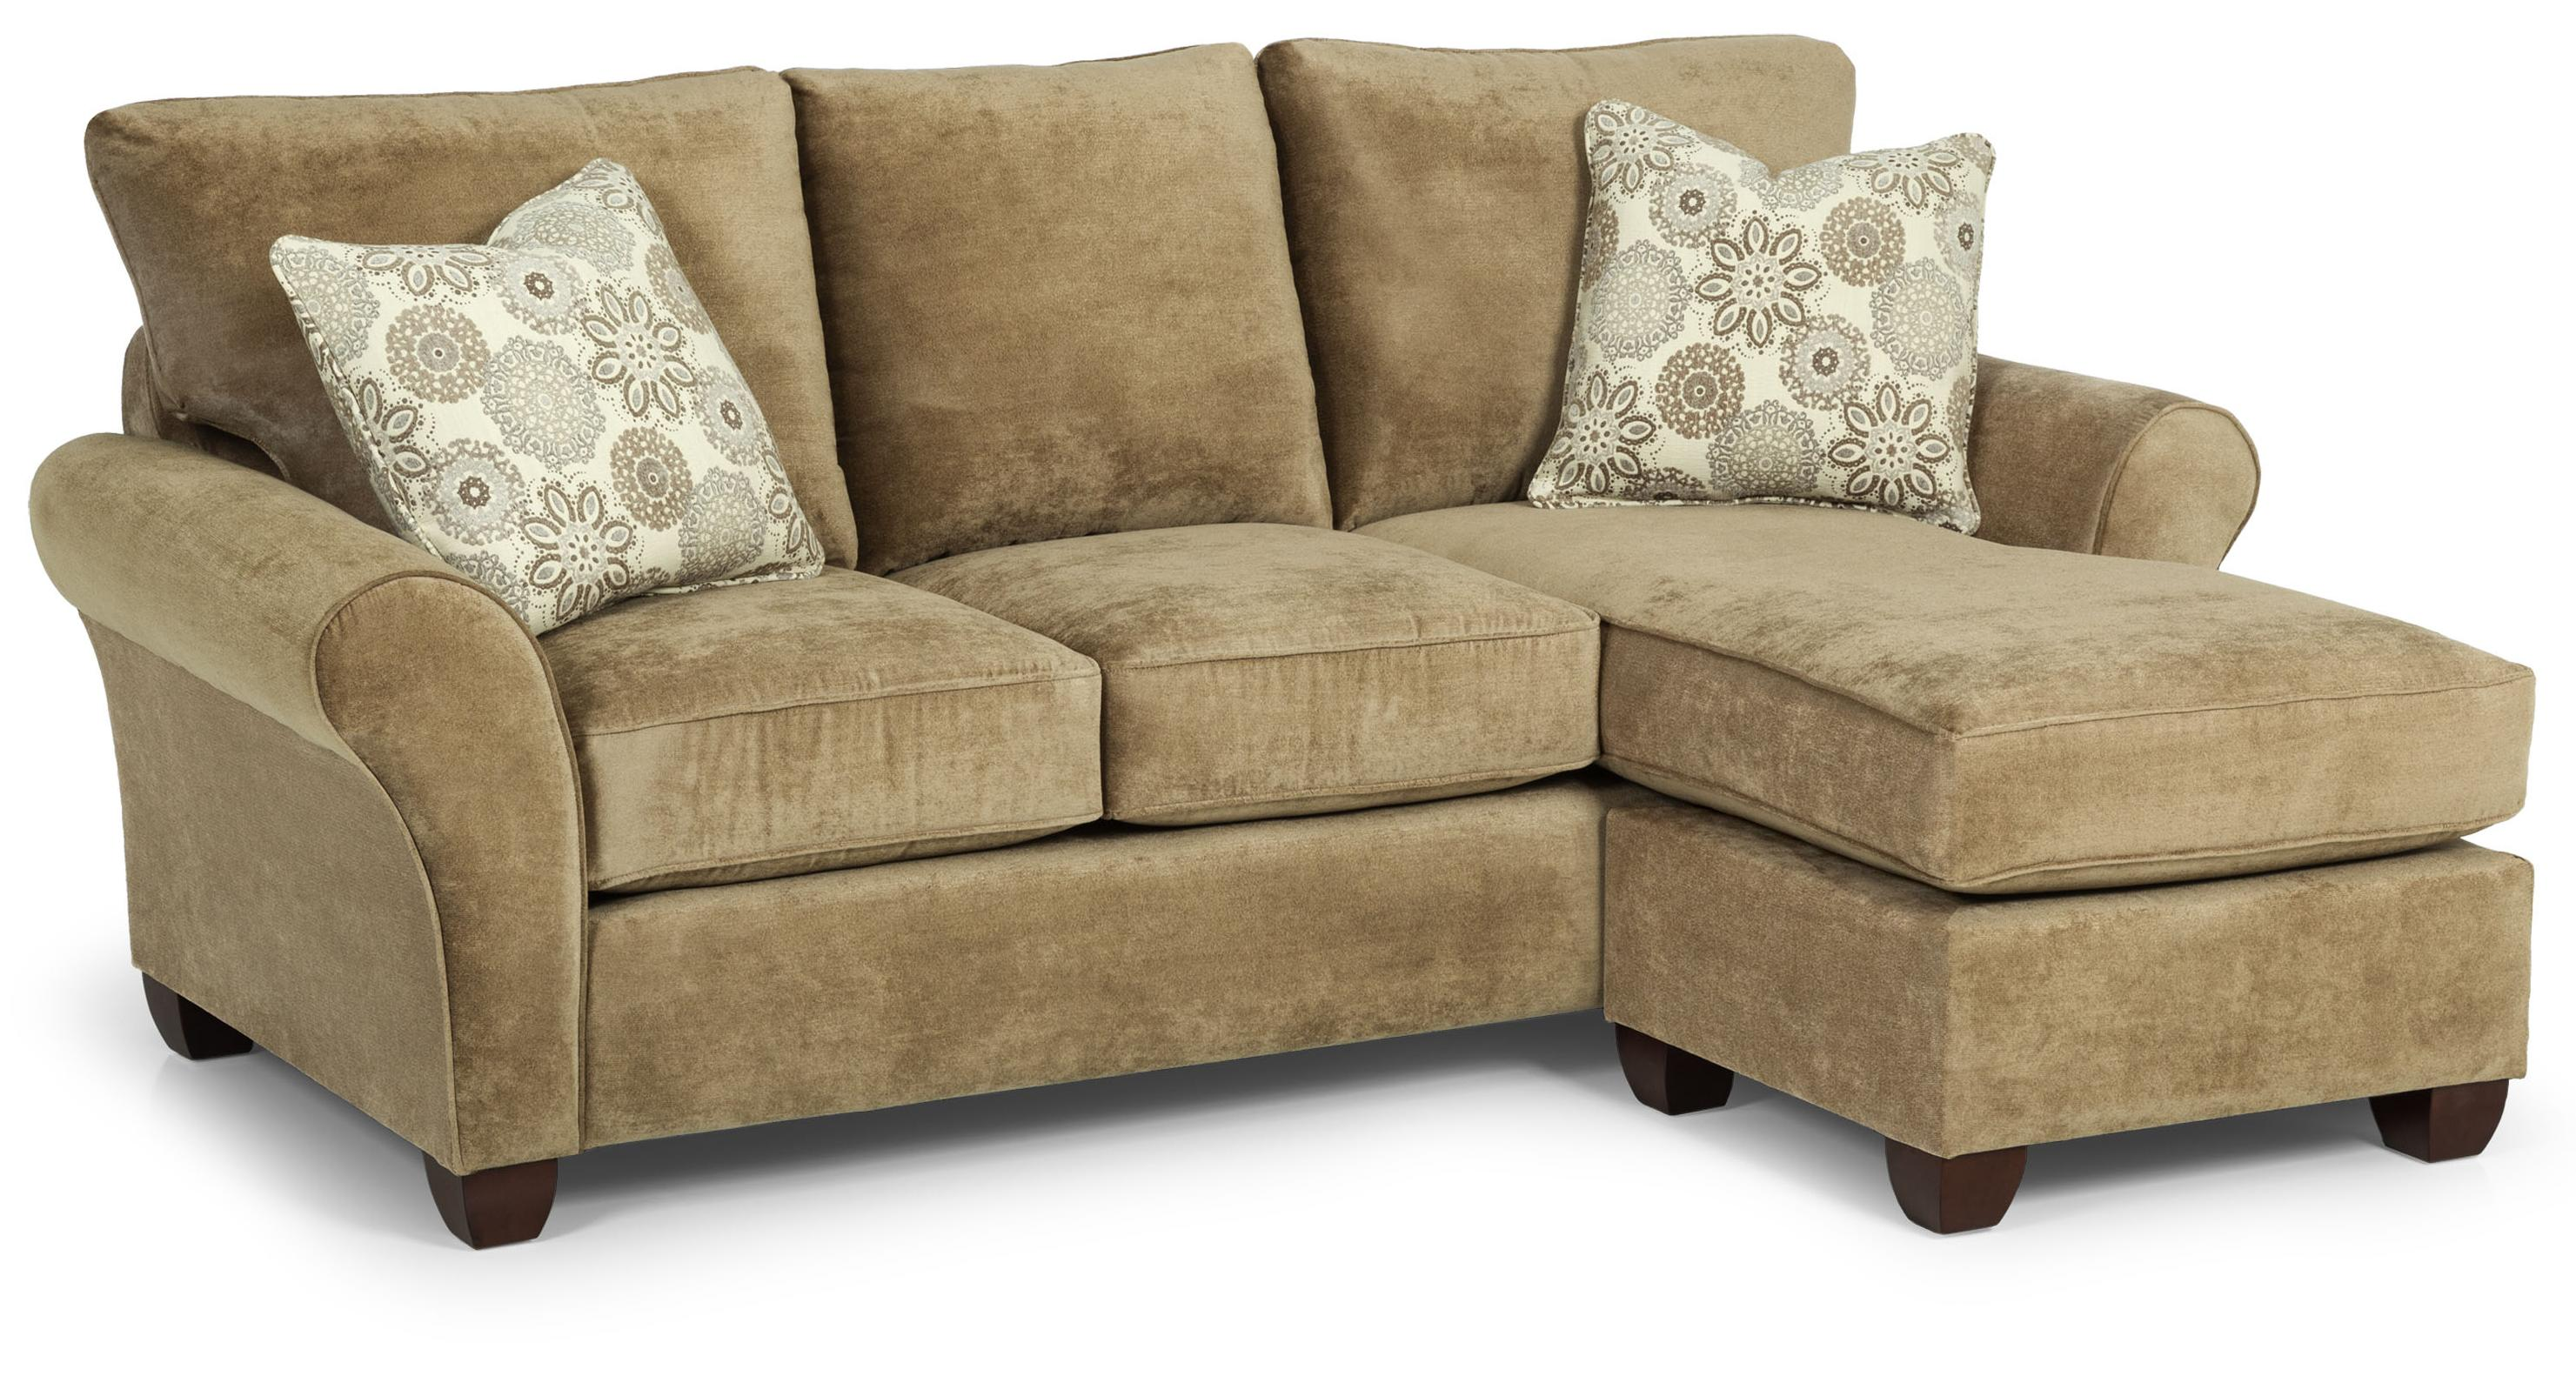 320 Transitional Chaise Sofa by Stanton at Wilson's Furniture